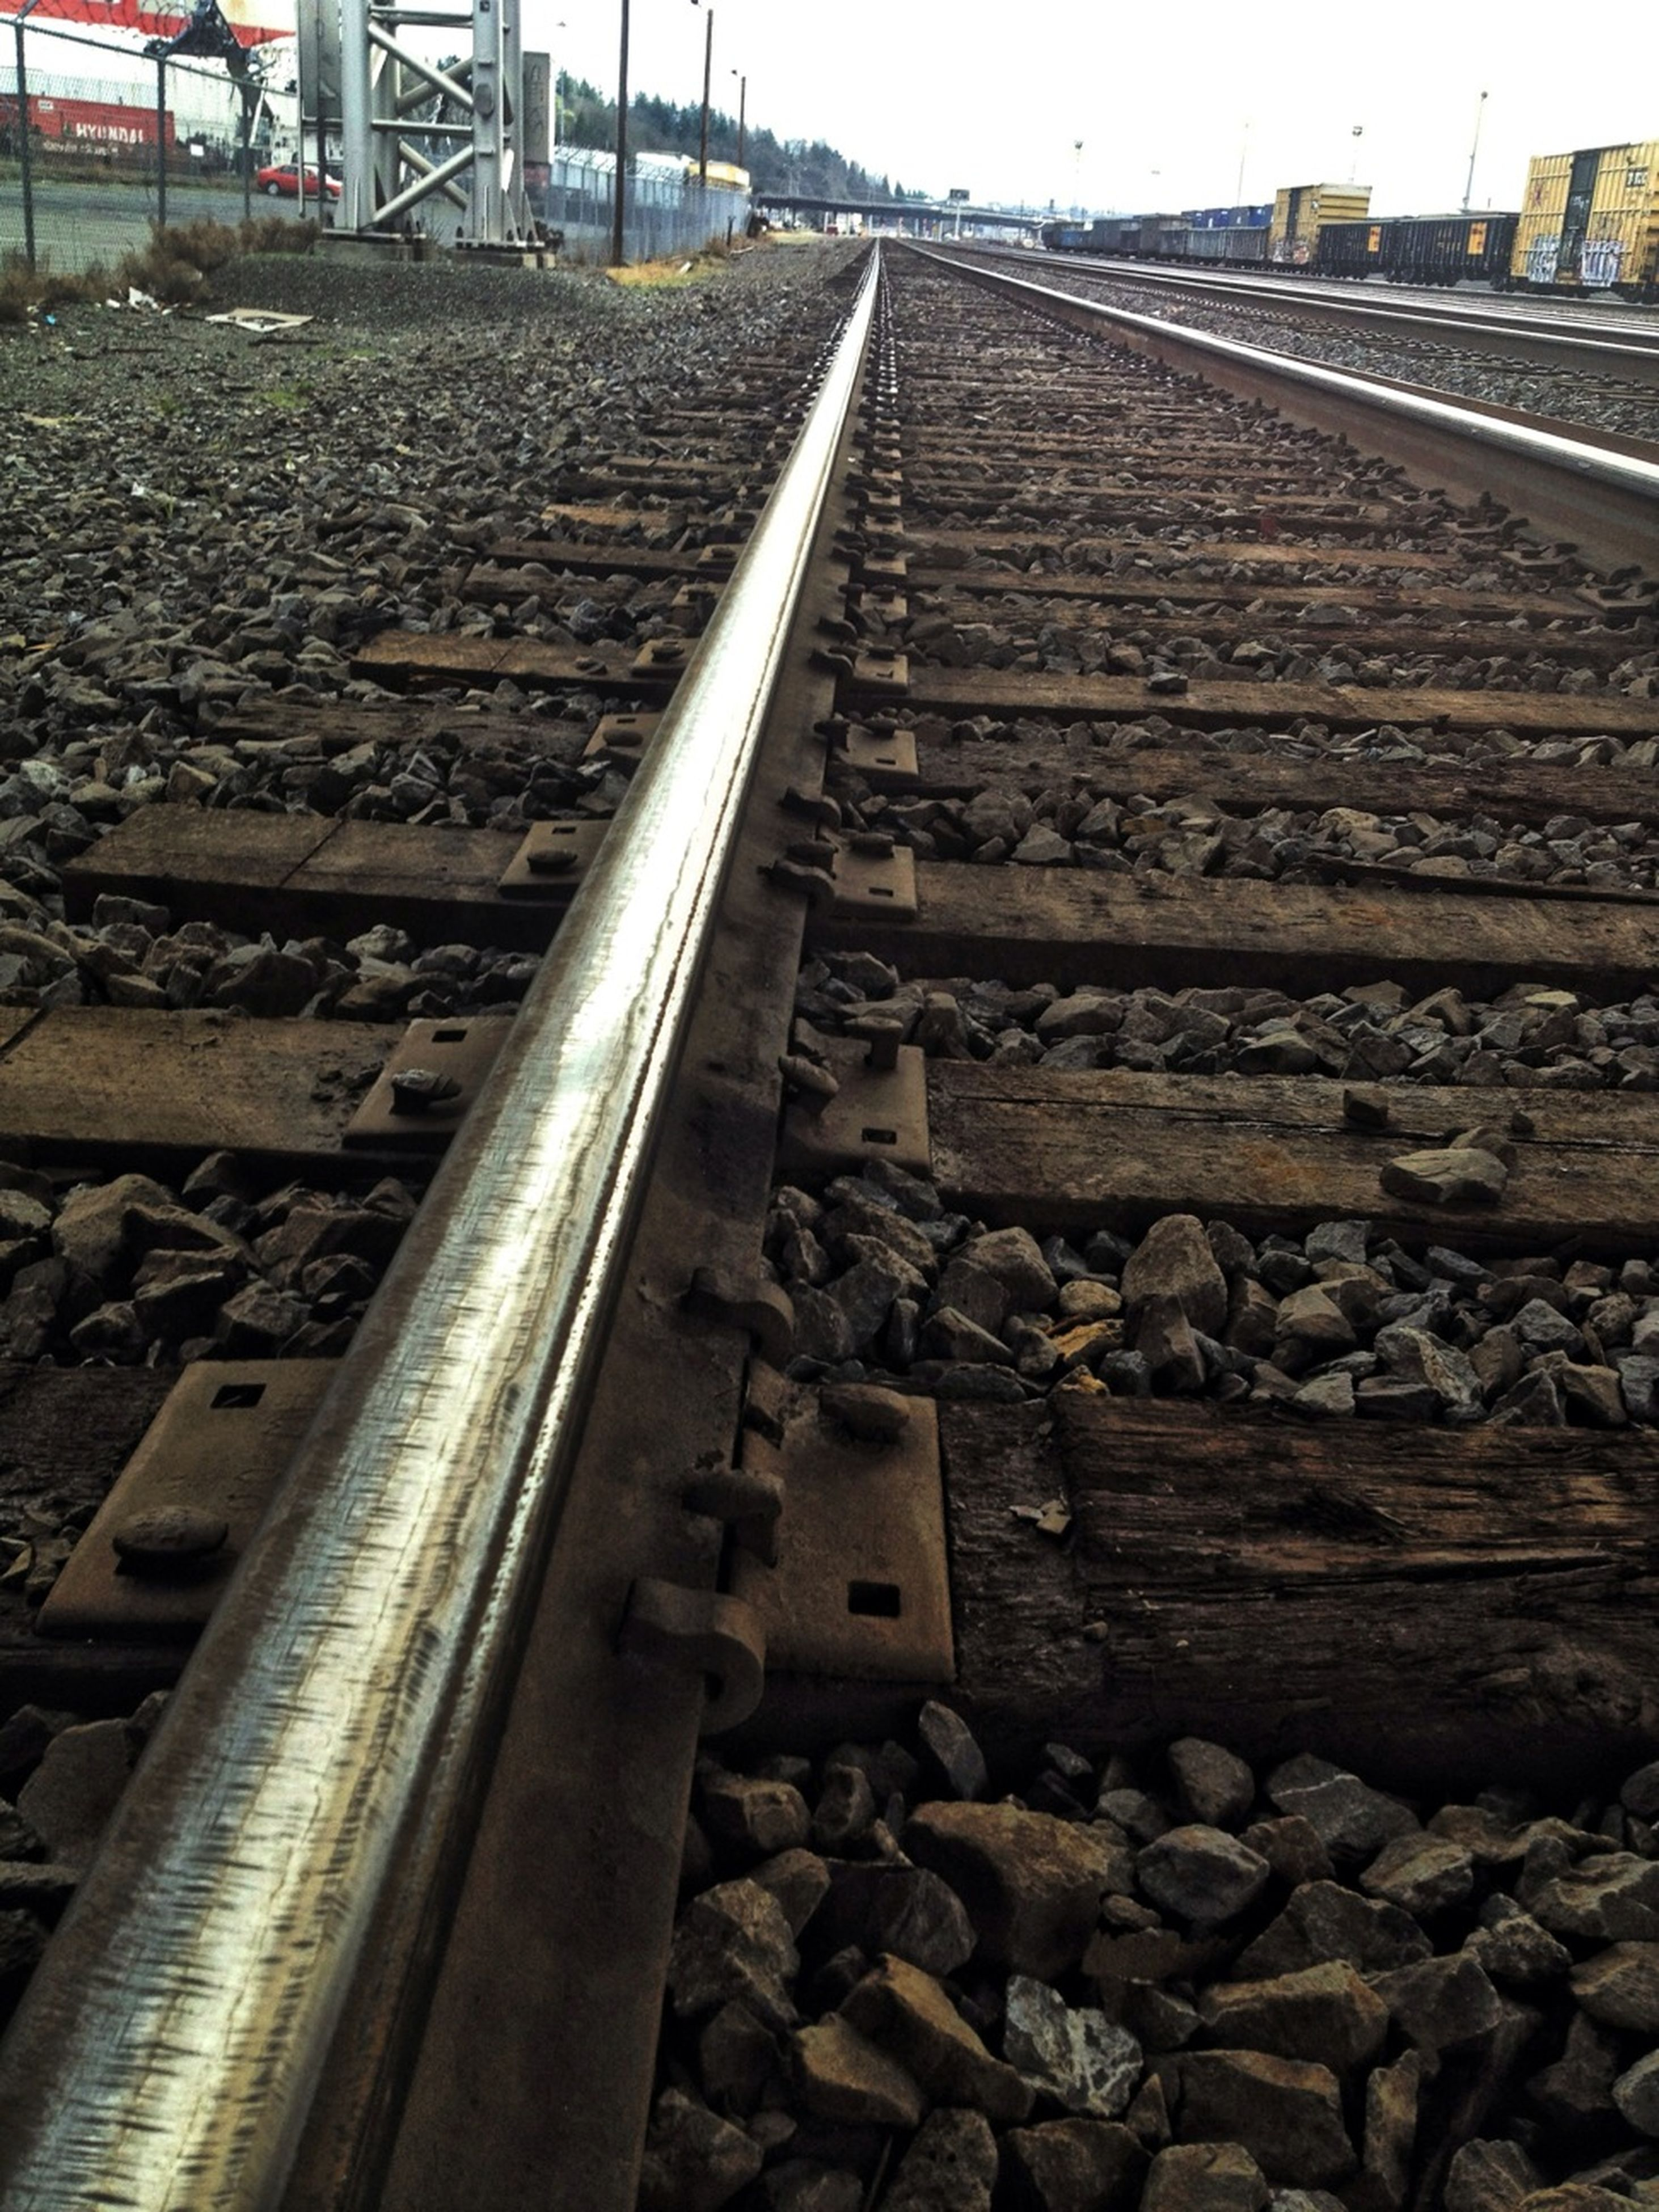 railroad track, the way forward, diminishing perspective, built structure, rail transportation, stone - object, architecture, vanishing point, surface level, metal, gravel, day, outdoors, wood - material, transportation, no people, building exterior, stone, steps, railing